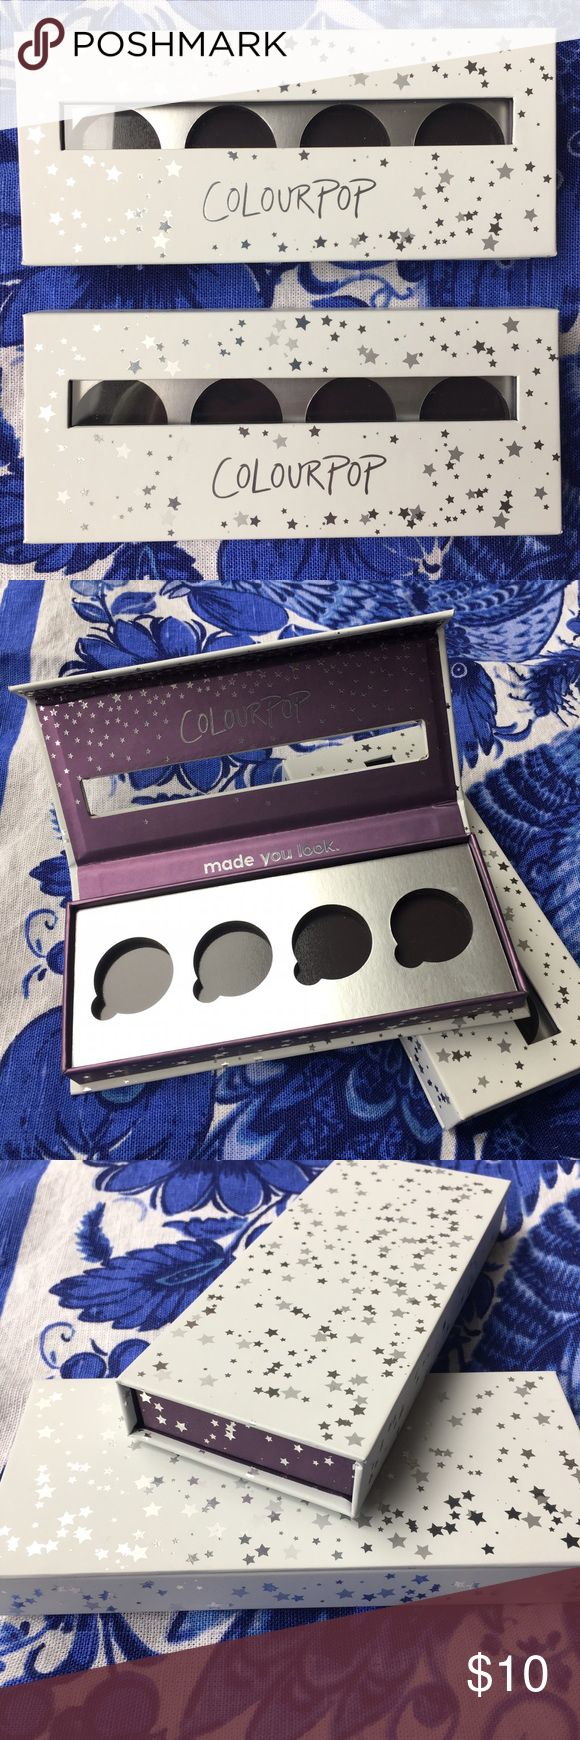 2 brand new empty Colourpop eyeshadow palettes! Palettes are magnetized and fit 4 eyeshadow pans each. Listing is for the two palettes together. Colourpop Makeup Brushes & Tools